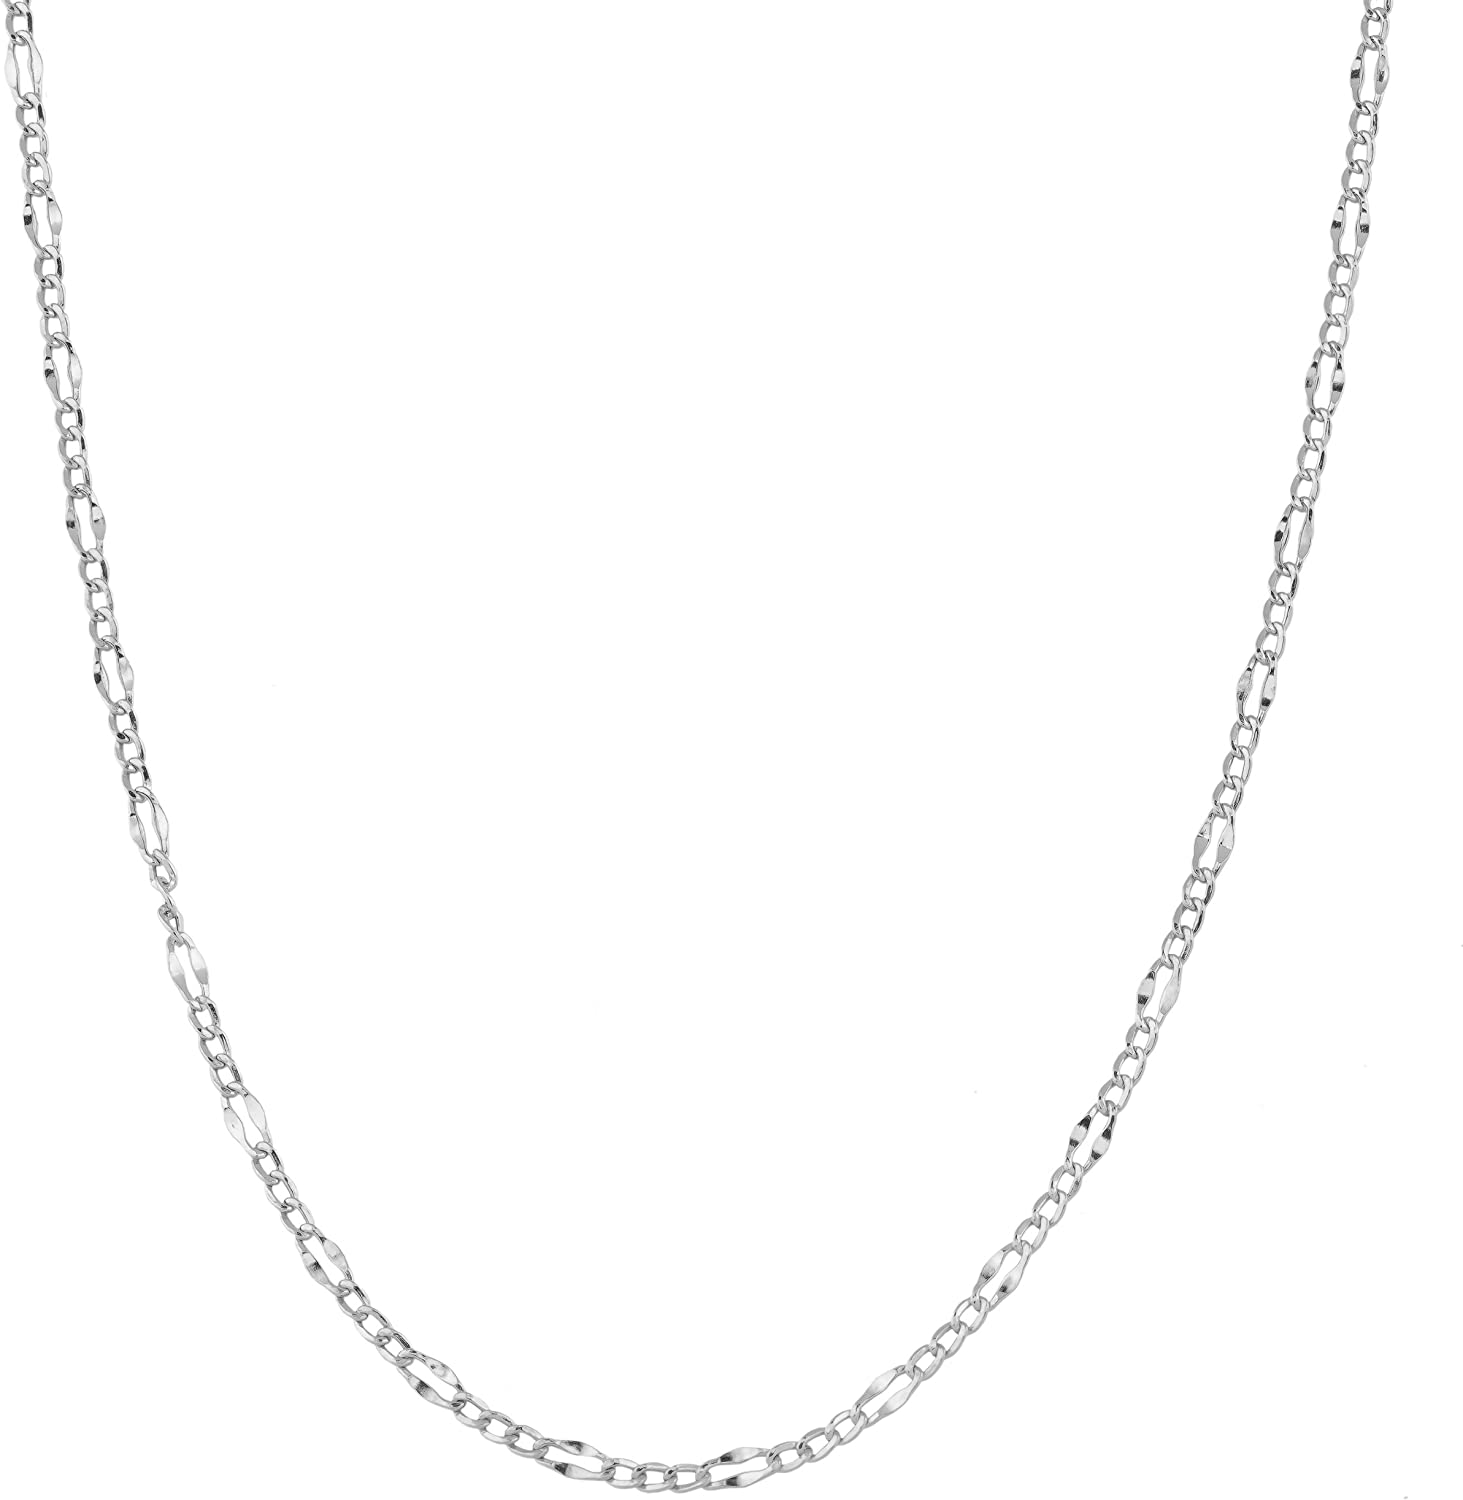 Kooljewelry 14k White Gold 2.3 mm Figaro Link Chain Necklace (16, 18, 20, 22, 24, 30 or 36 inch)